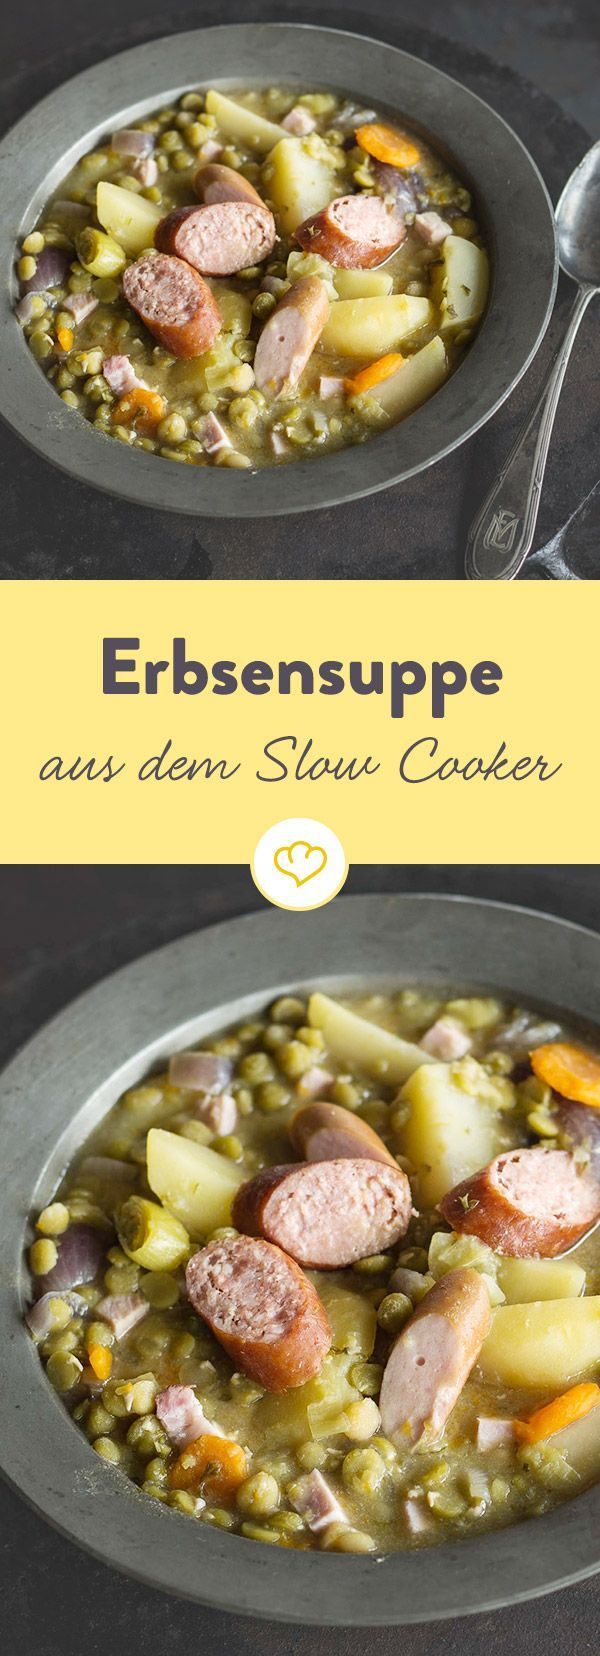 Tasty down to earth and healthy  the pea soup is the classic among   Tasty down to earth and healthy  the pea soup is the classic among Germanys stews In a s